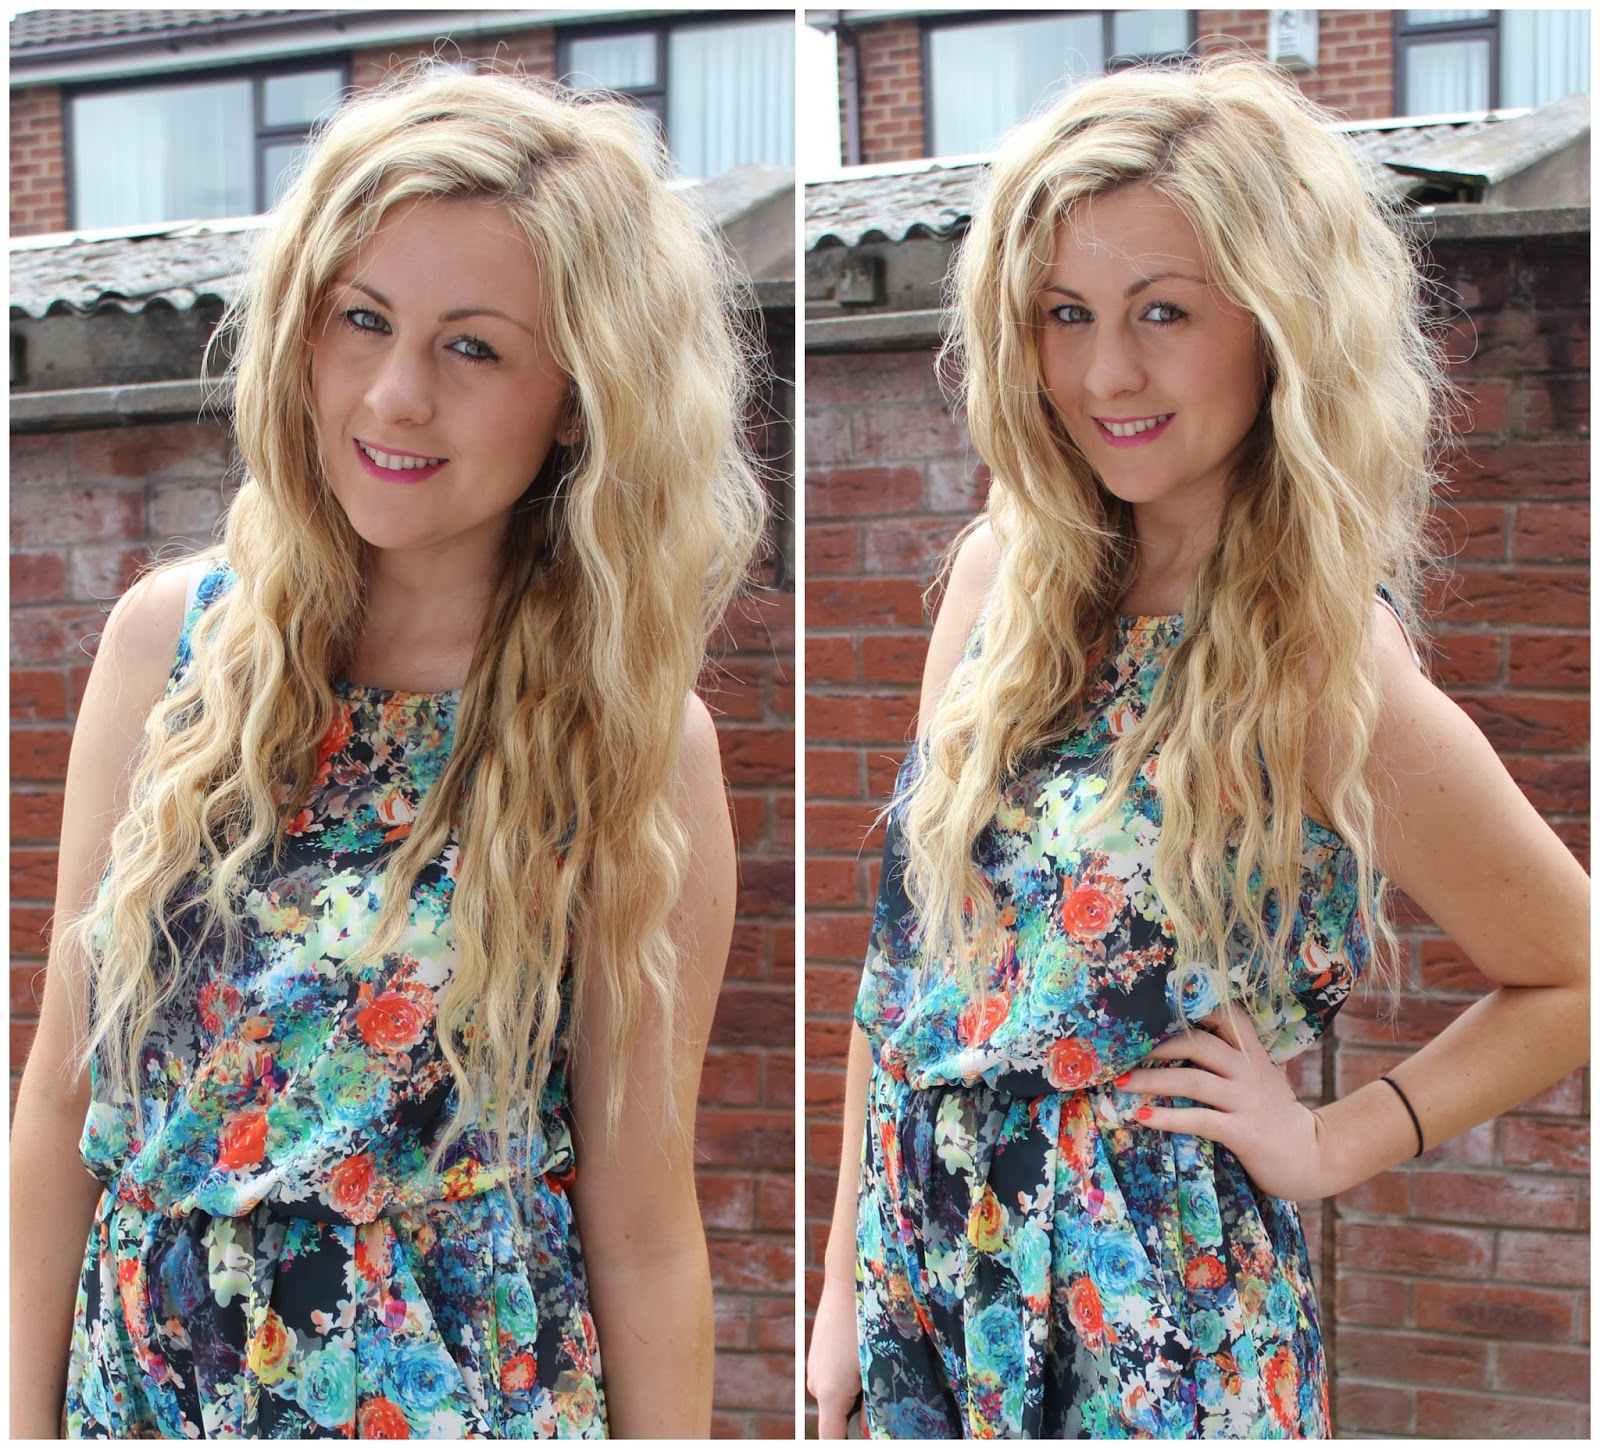 Review Cliphair Deluxevolume Hair Extensions Through Chelseas Eyes